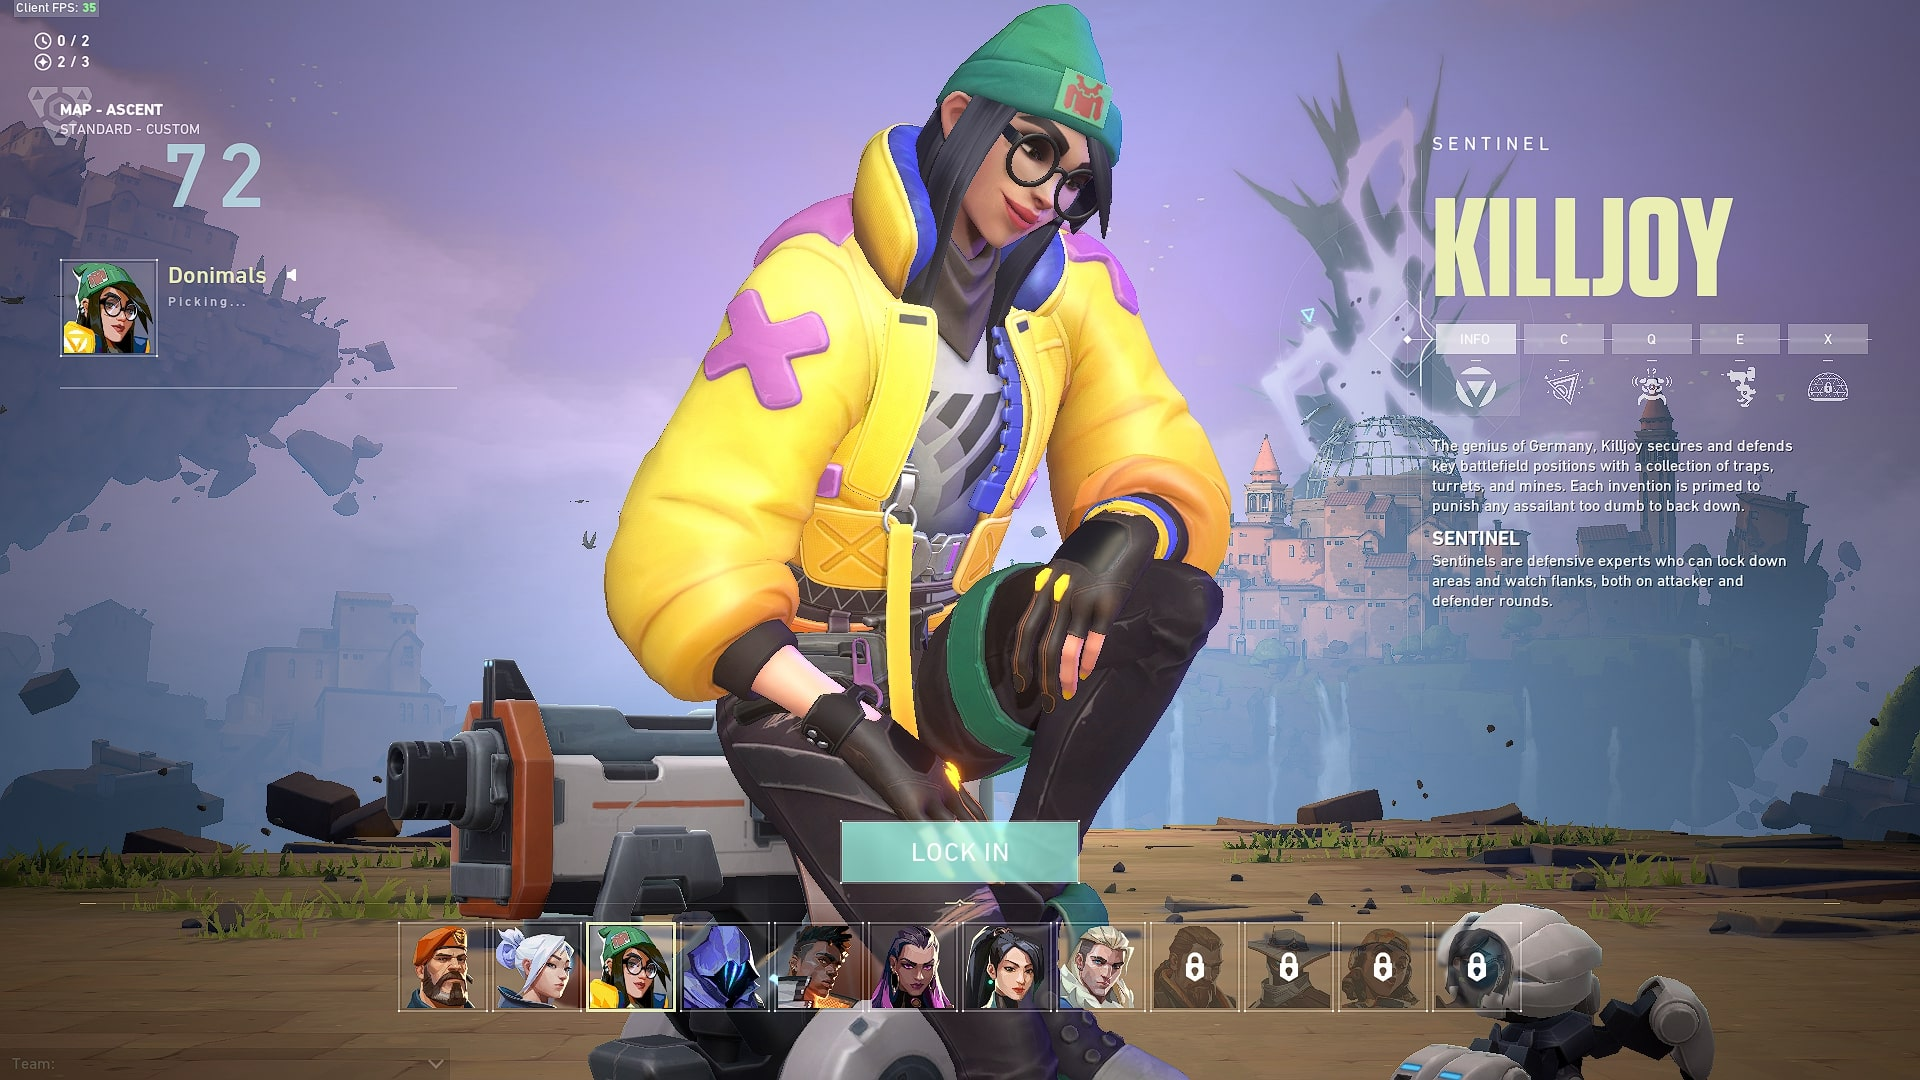 Killjoy is one of the characters in the game. (Image: Valorant)